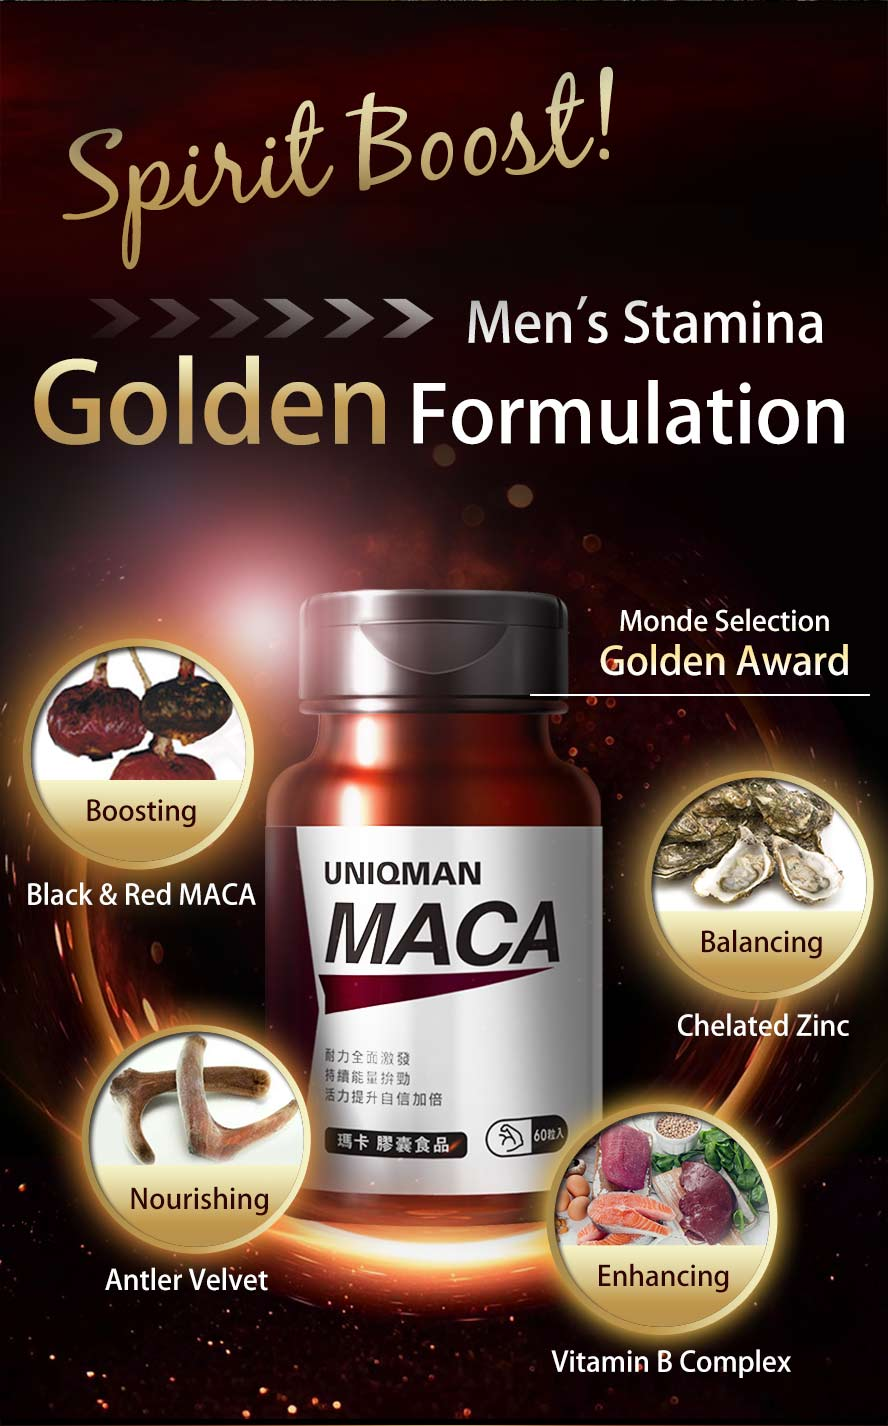 UNIQMAN MACA improves your sexual performance